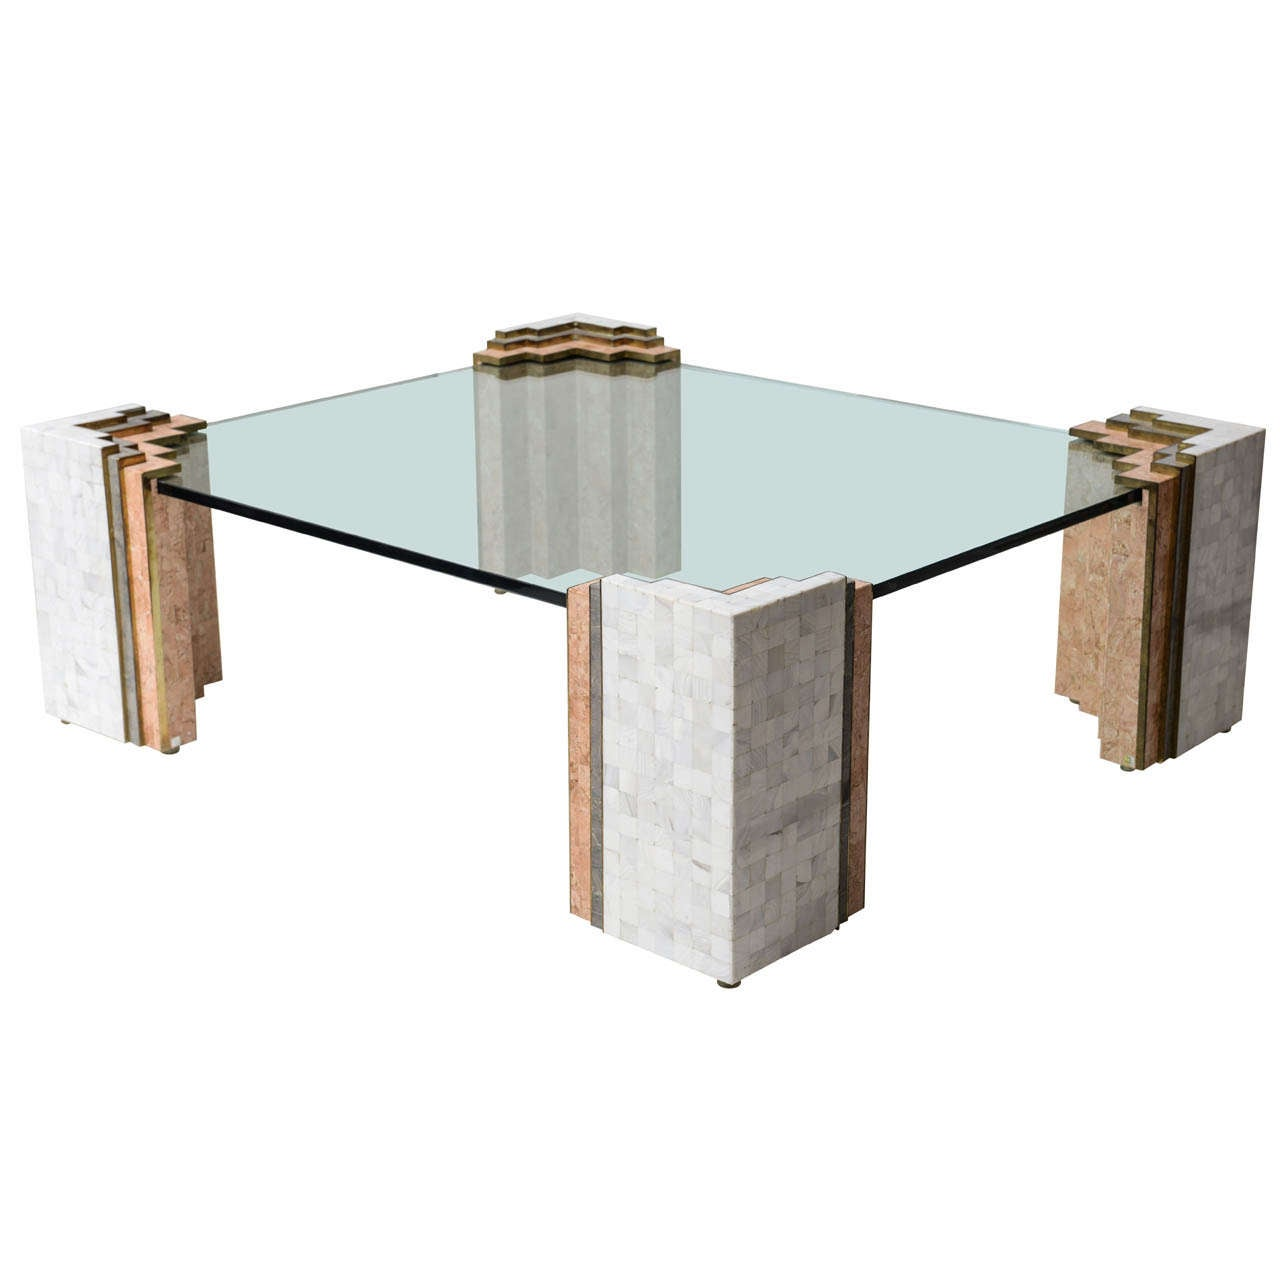 Tessellated Stone Coffee Table By Maitland Smith At 1stdibs